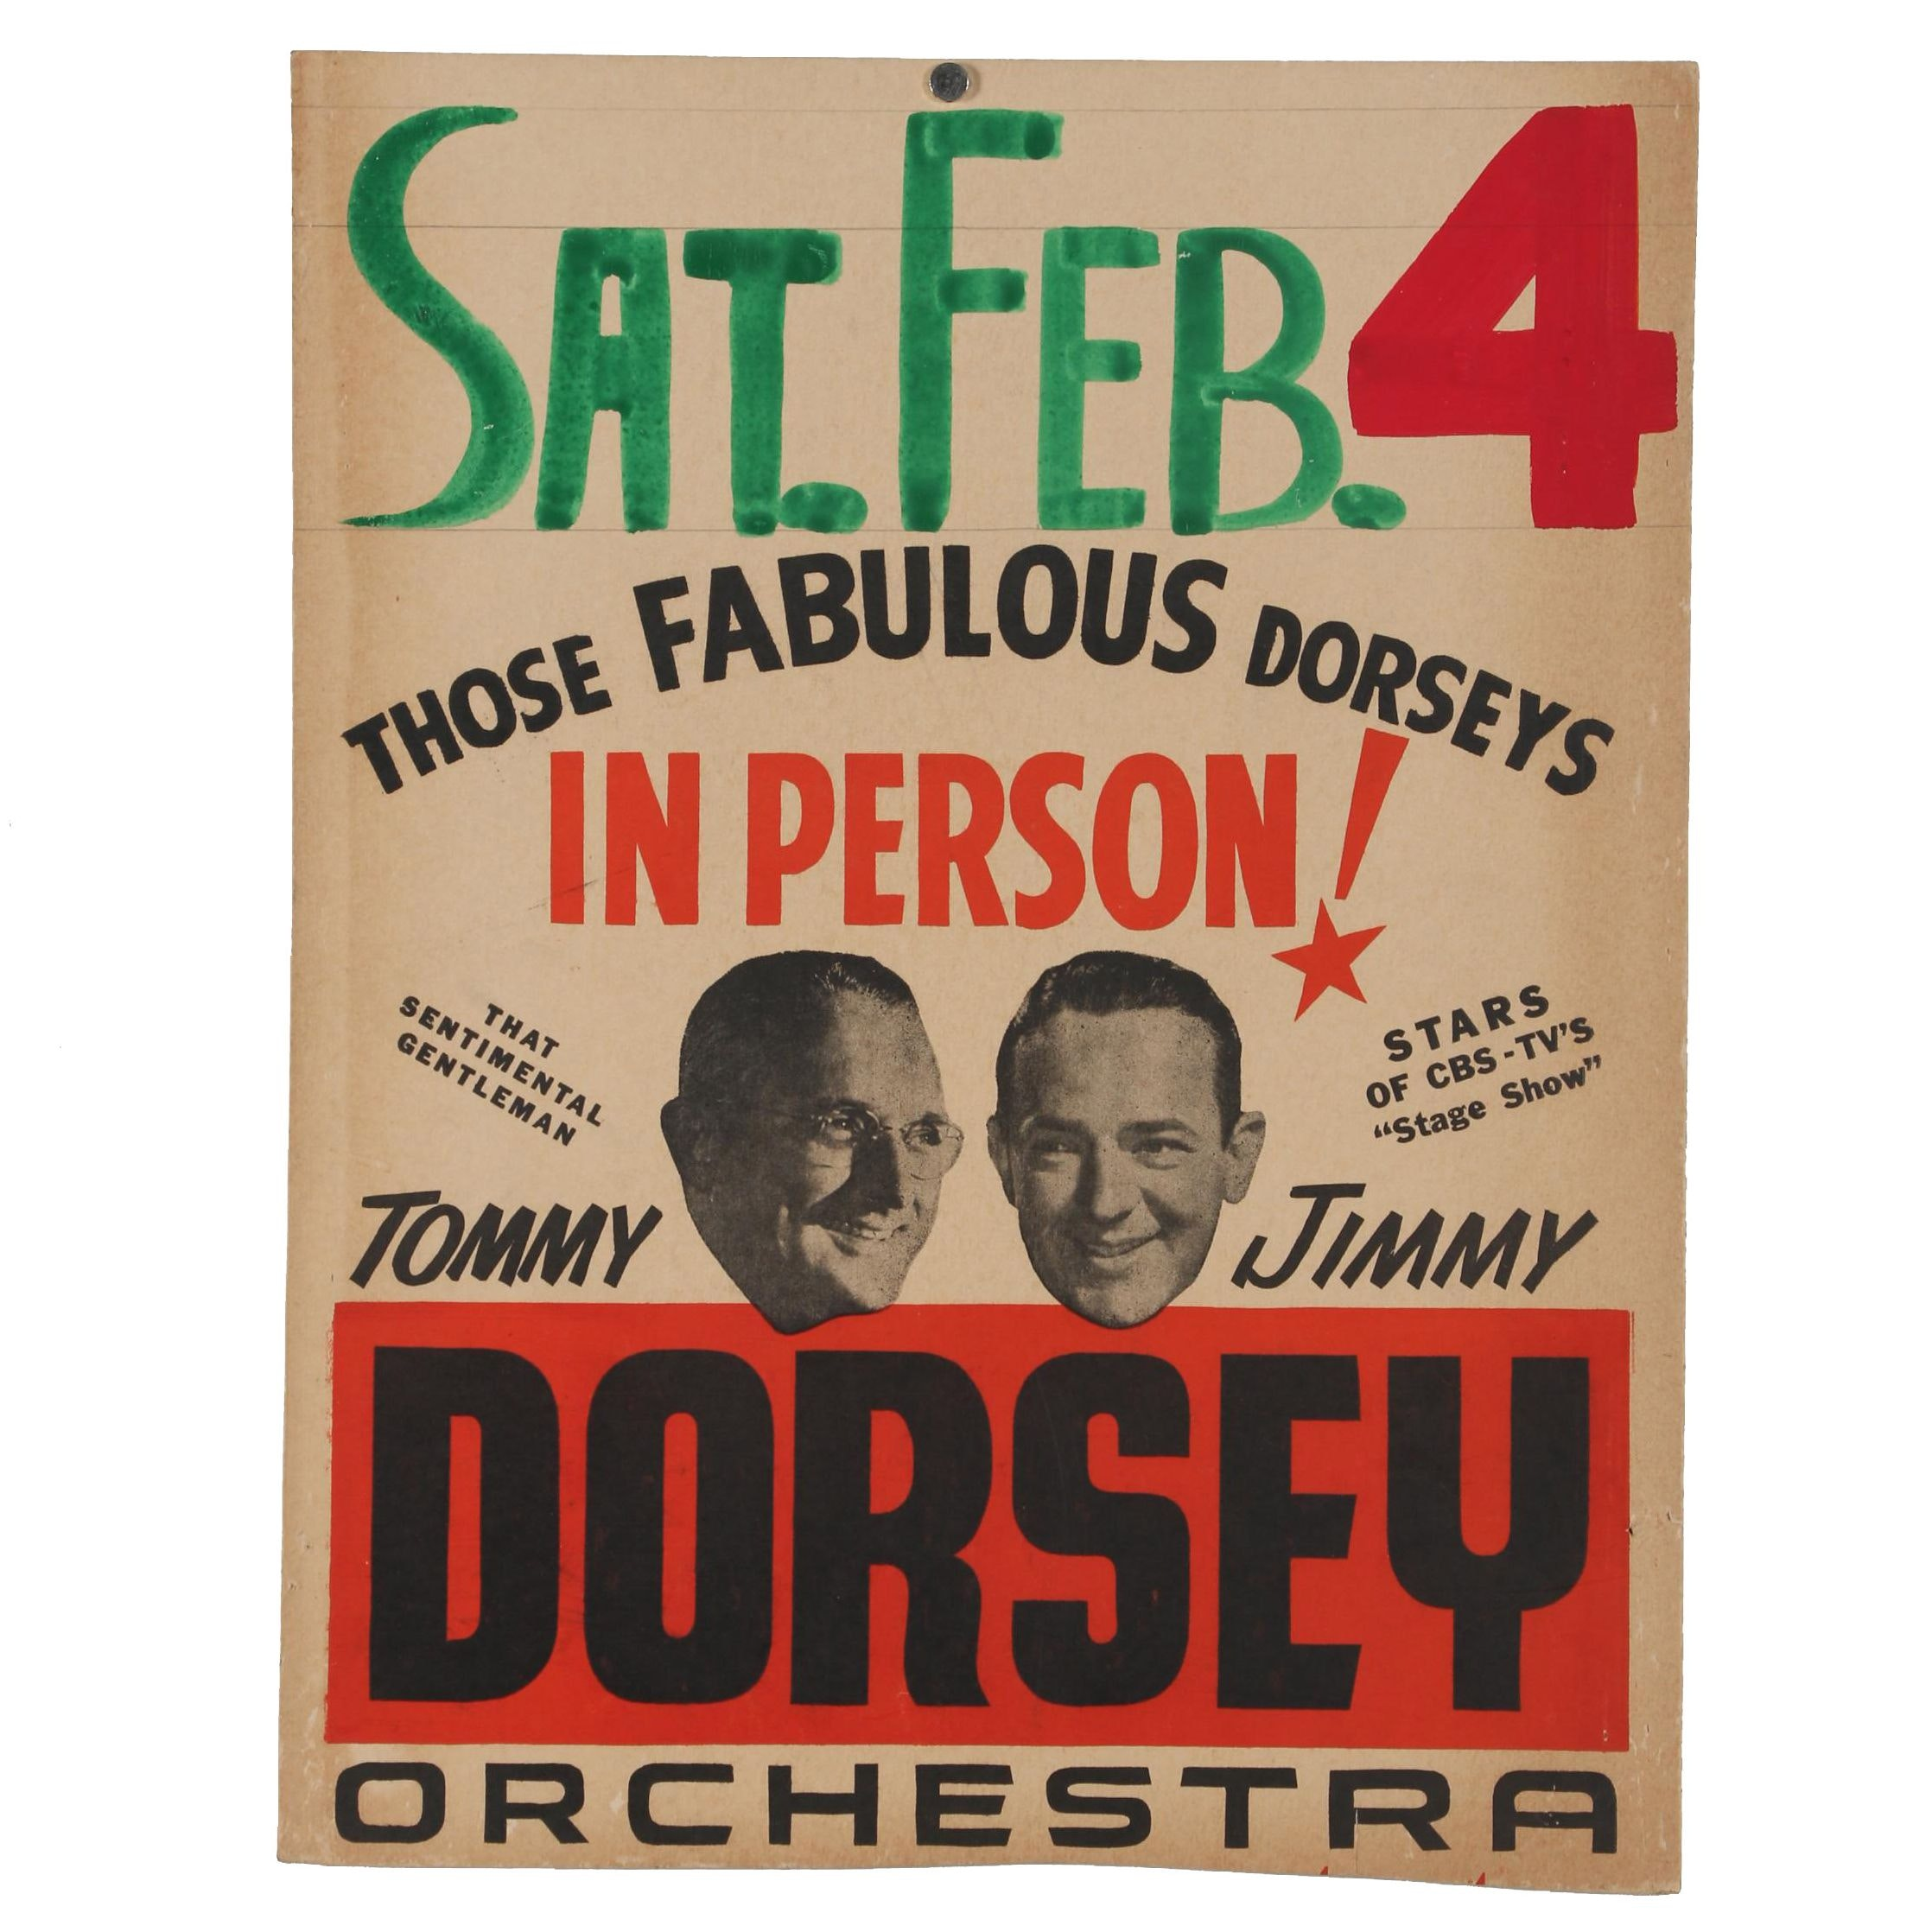 Dorsey Orchestra Promotional Concert Poster